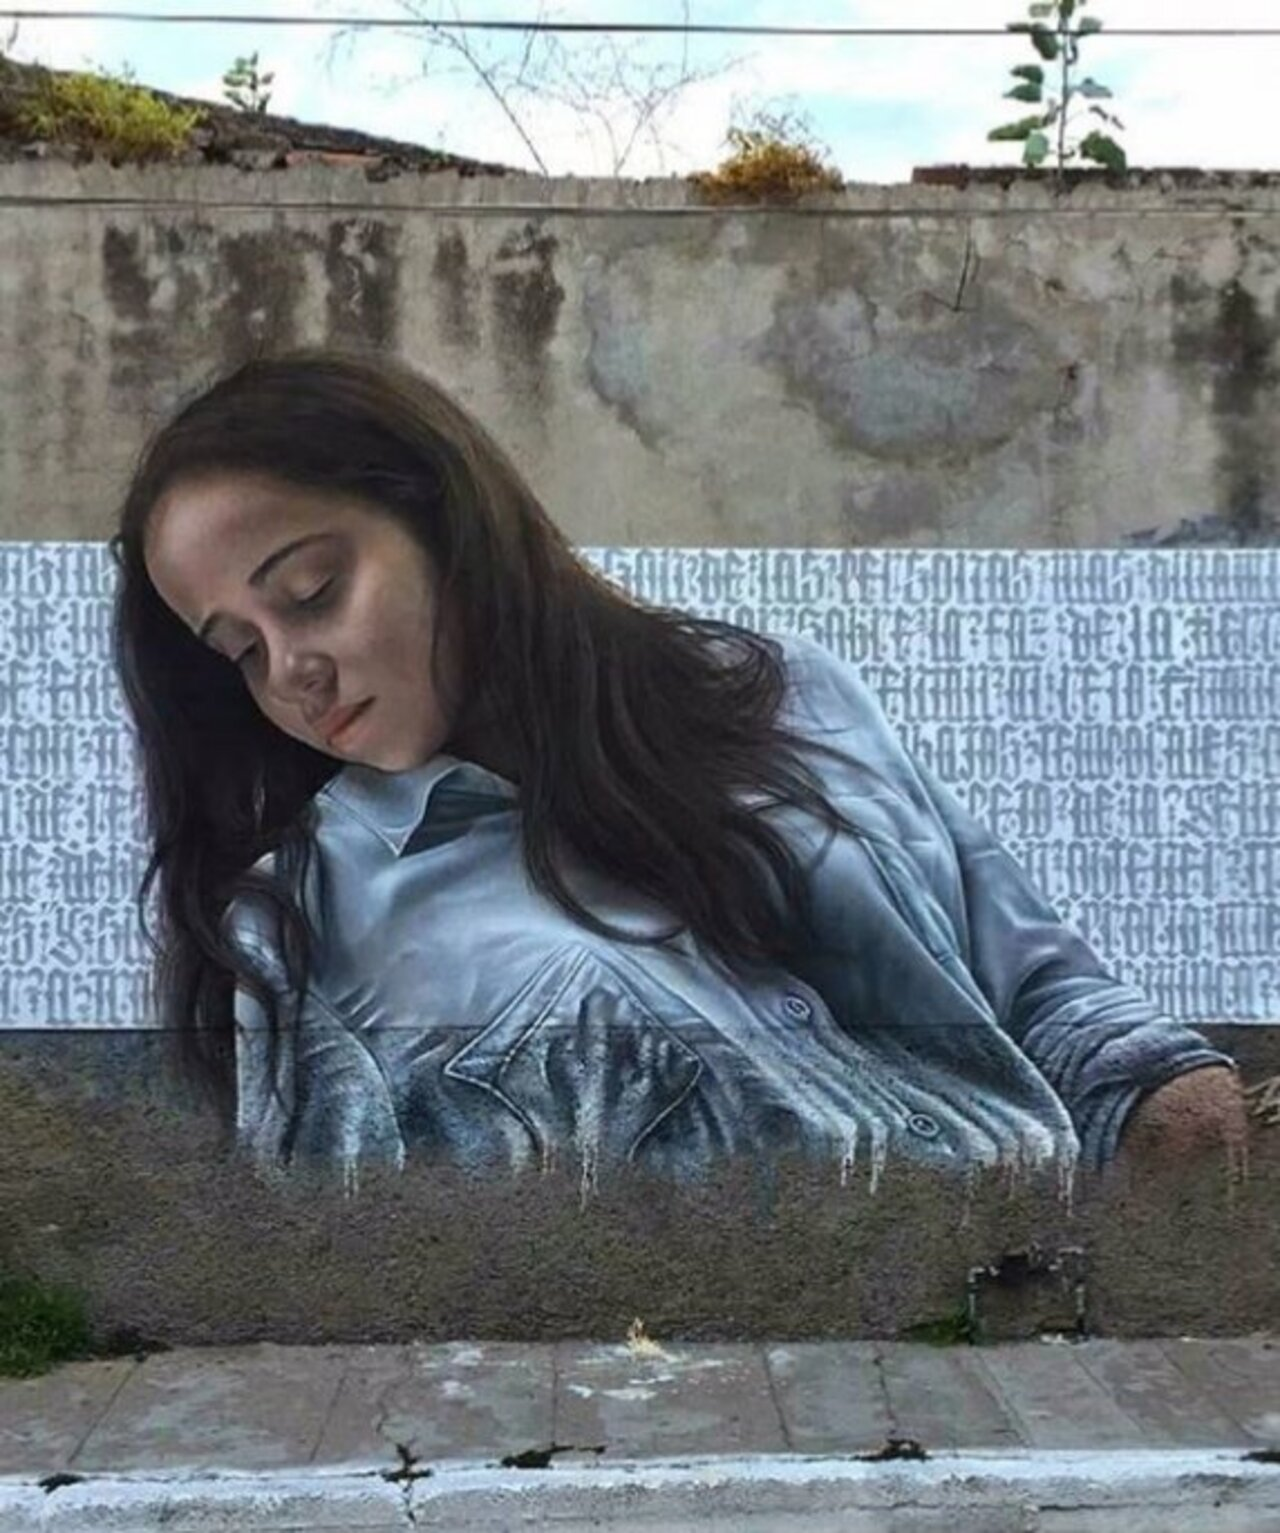 .        ....On the wall..... #streetart #graffiti #WallArt #UrbanArt #art https://t.co/mkWn87avkf